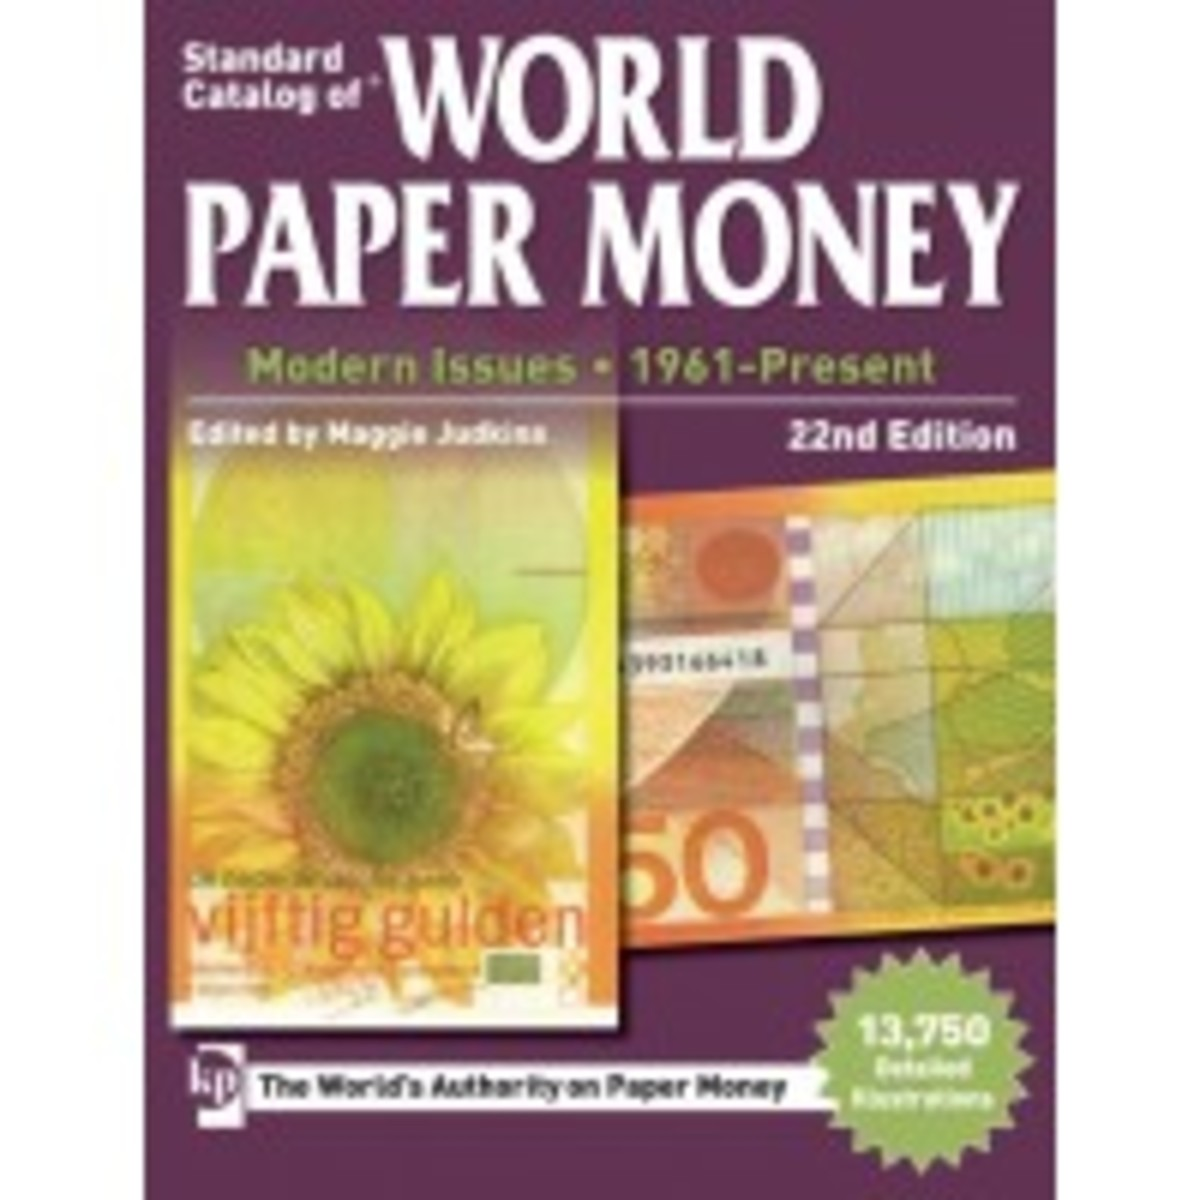 Identifying and pricing modern paper money has never been easier with the the latest Standard Catalog of World Paper Money, Modern Issues!